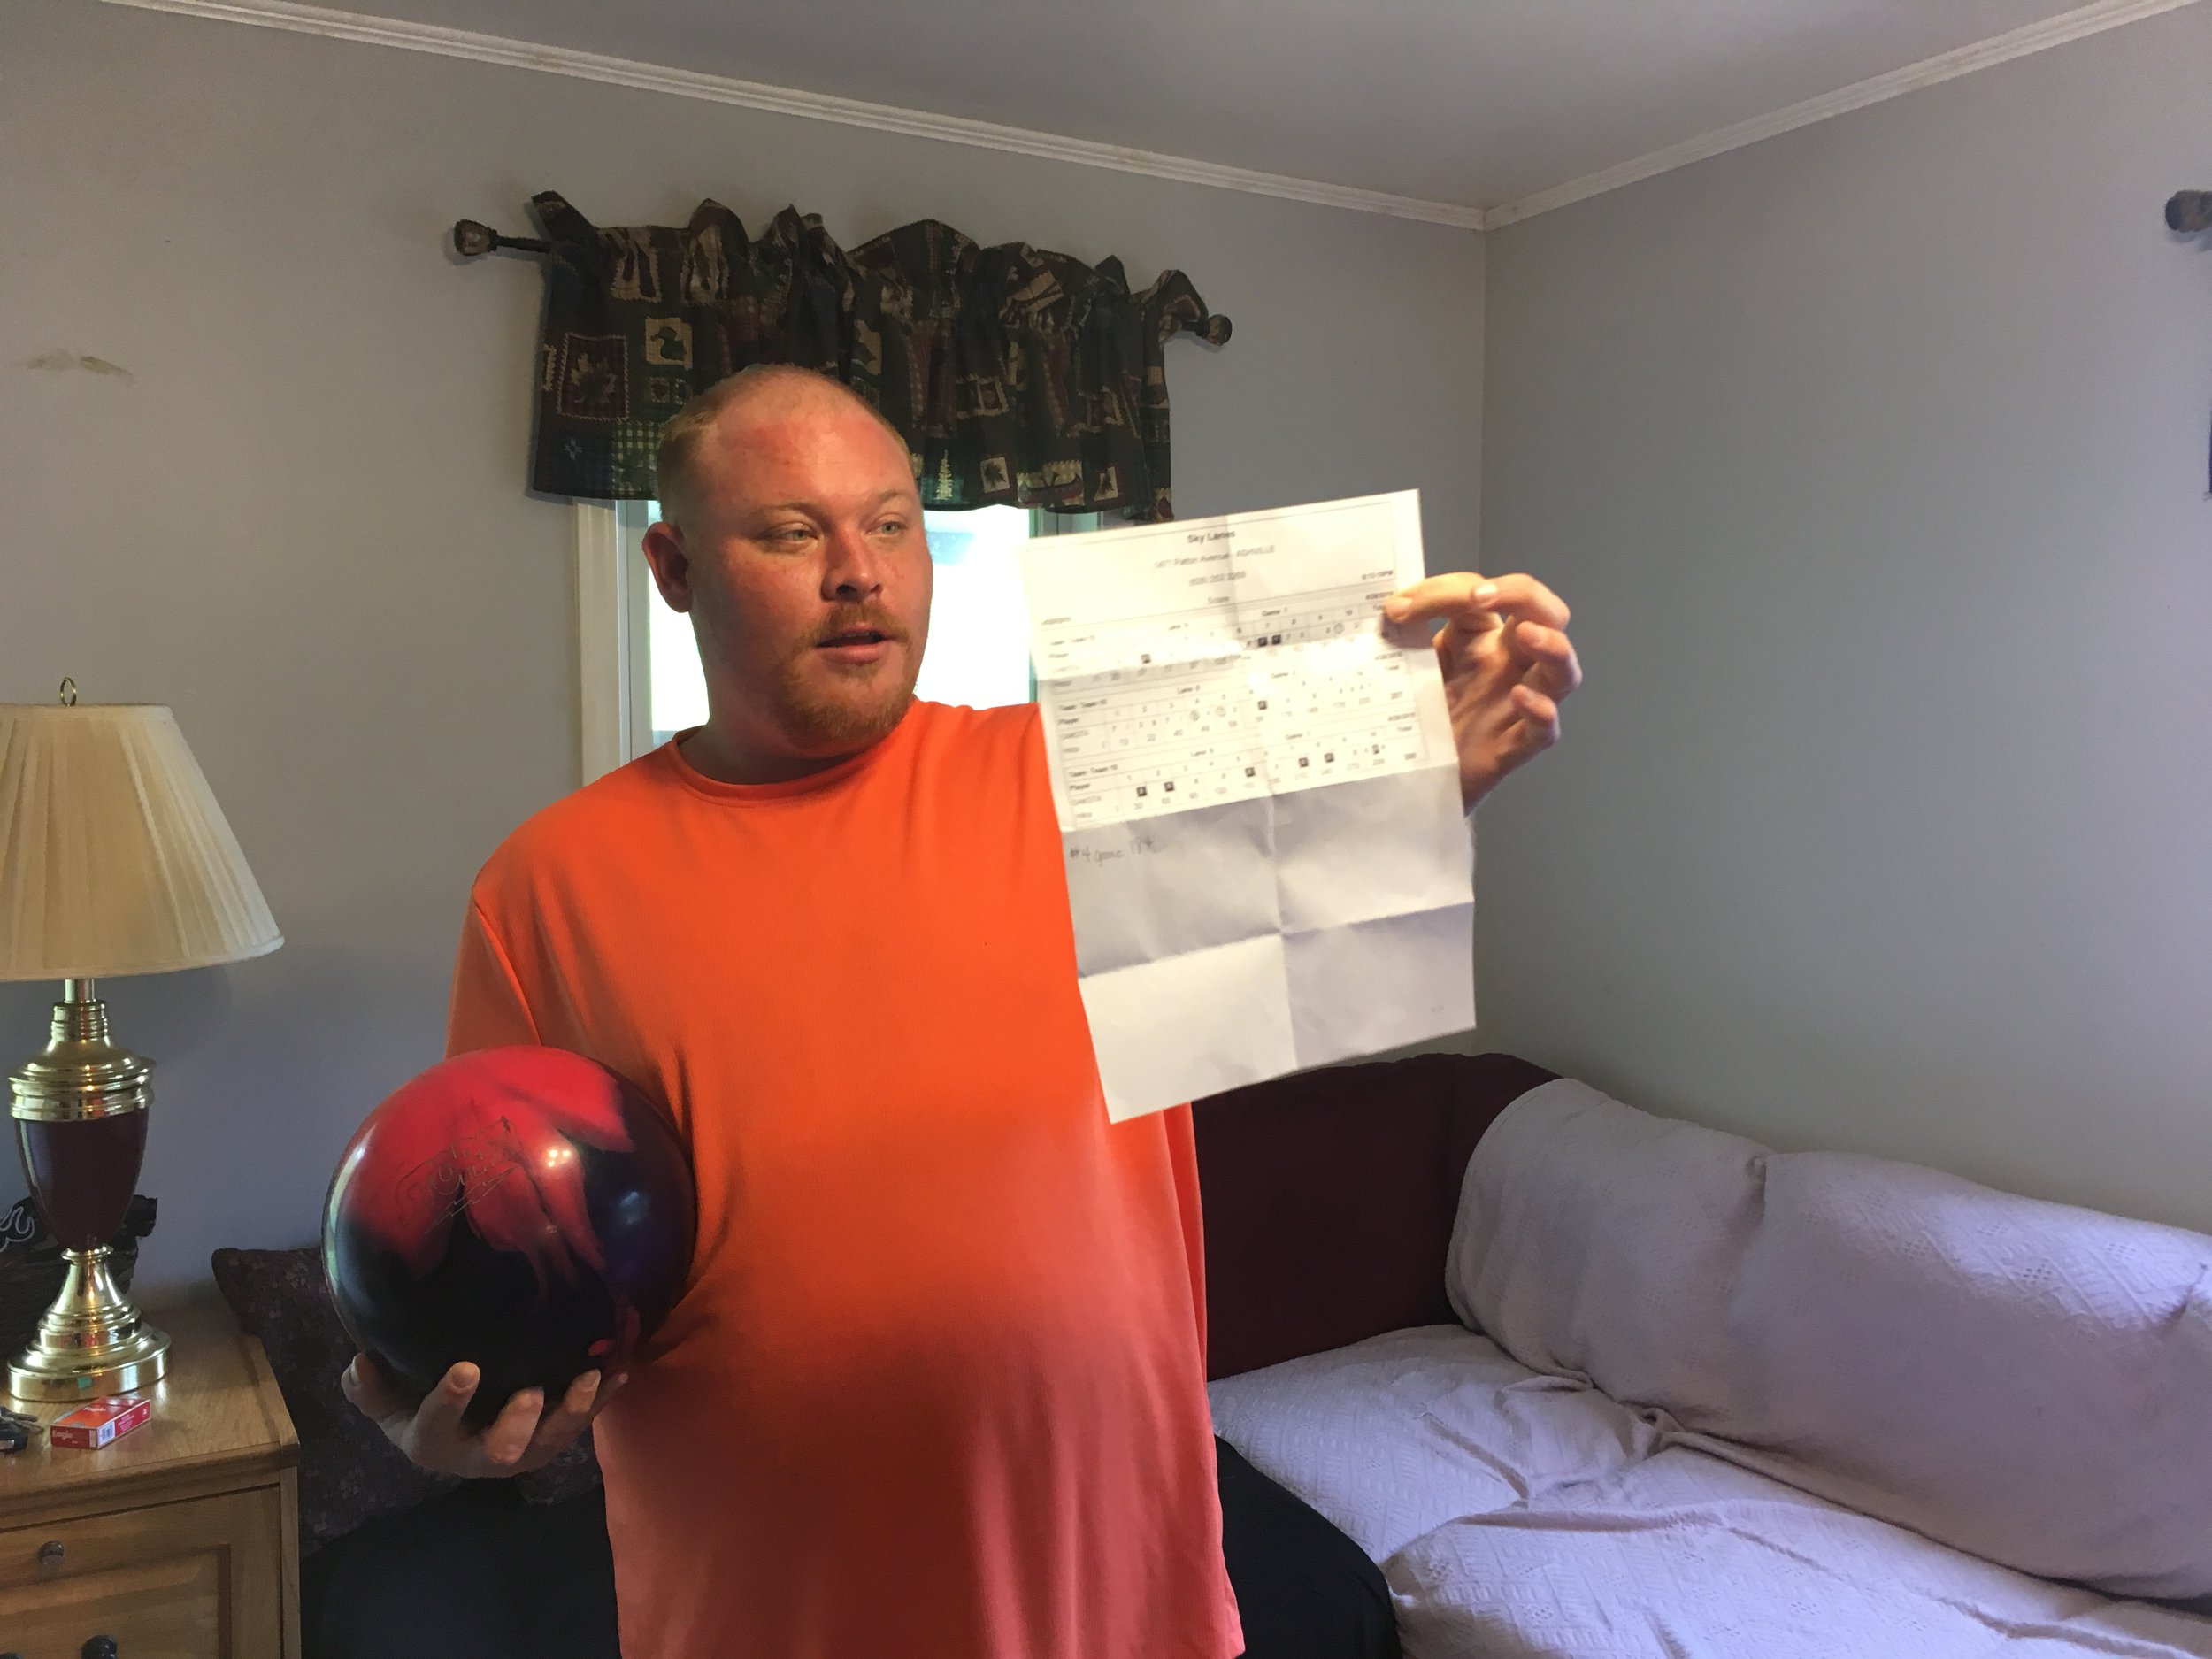 Dakota shows off his custom bowling ball and discusses his new high score – a 300!